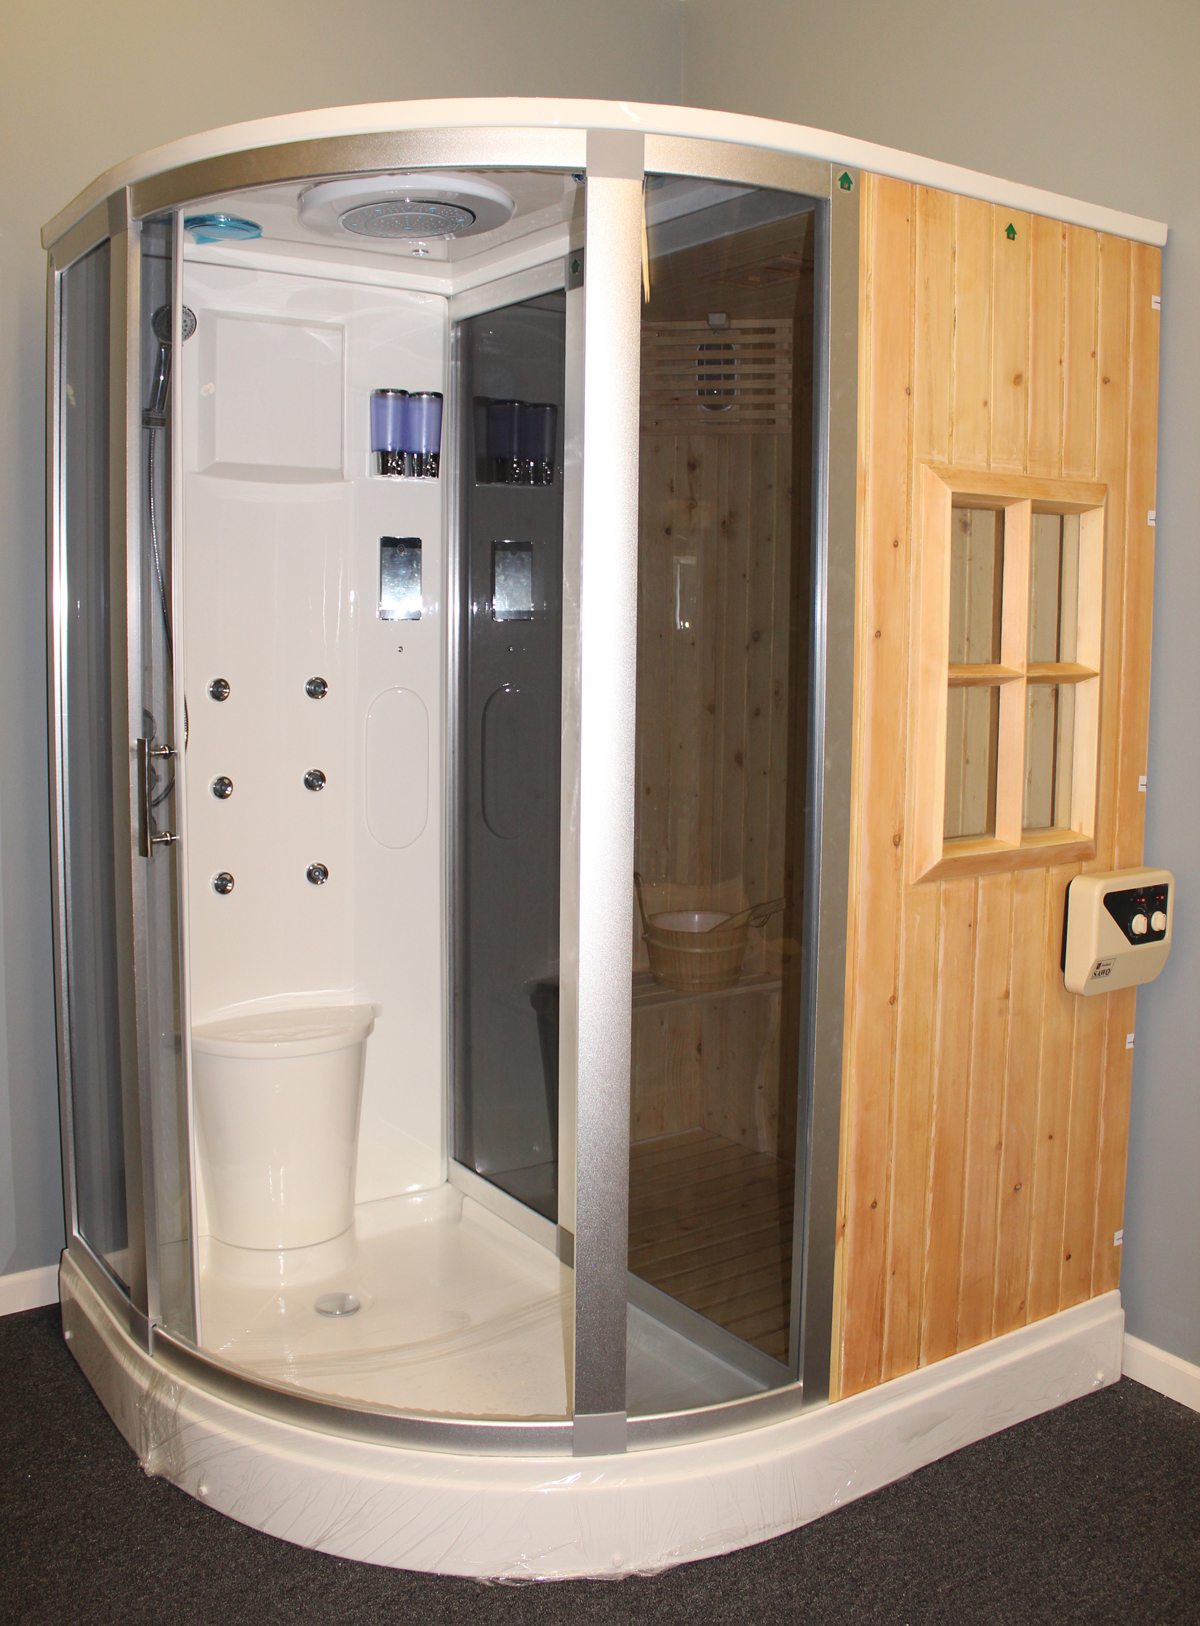 B001   Image 2 Deluxe Shower / Dry Sauna Combo System + Steam Cabin.